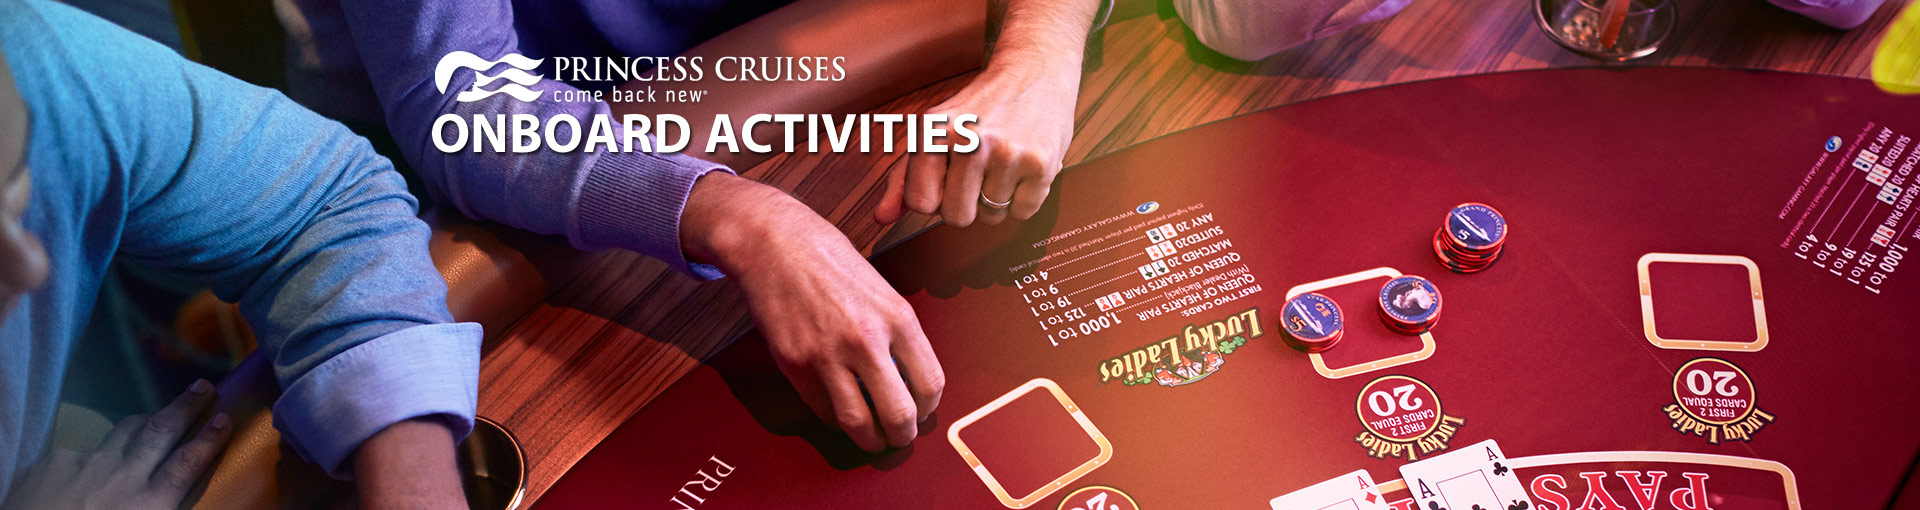 Princess Cruises Onboard Activities